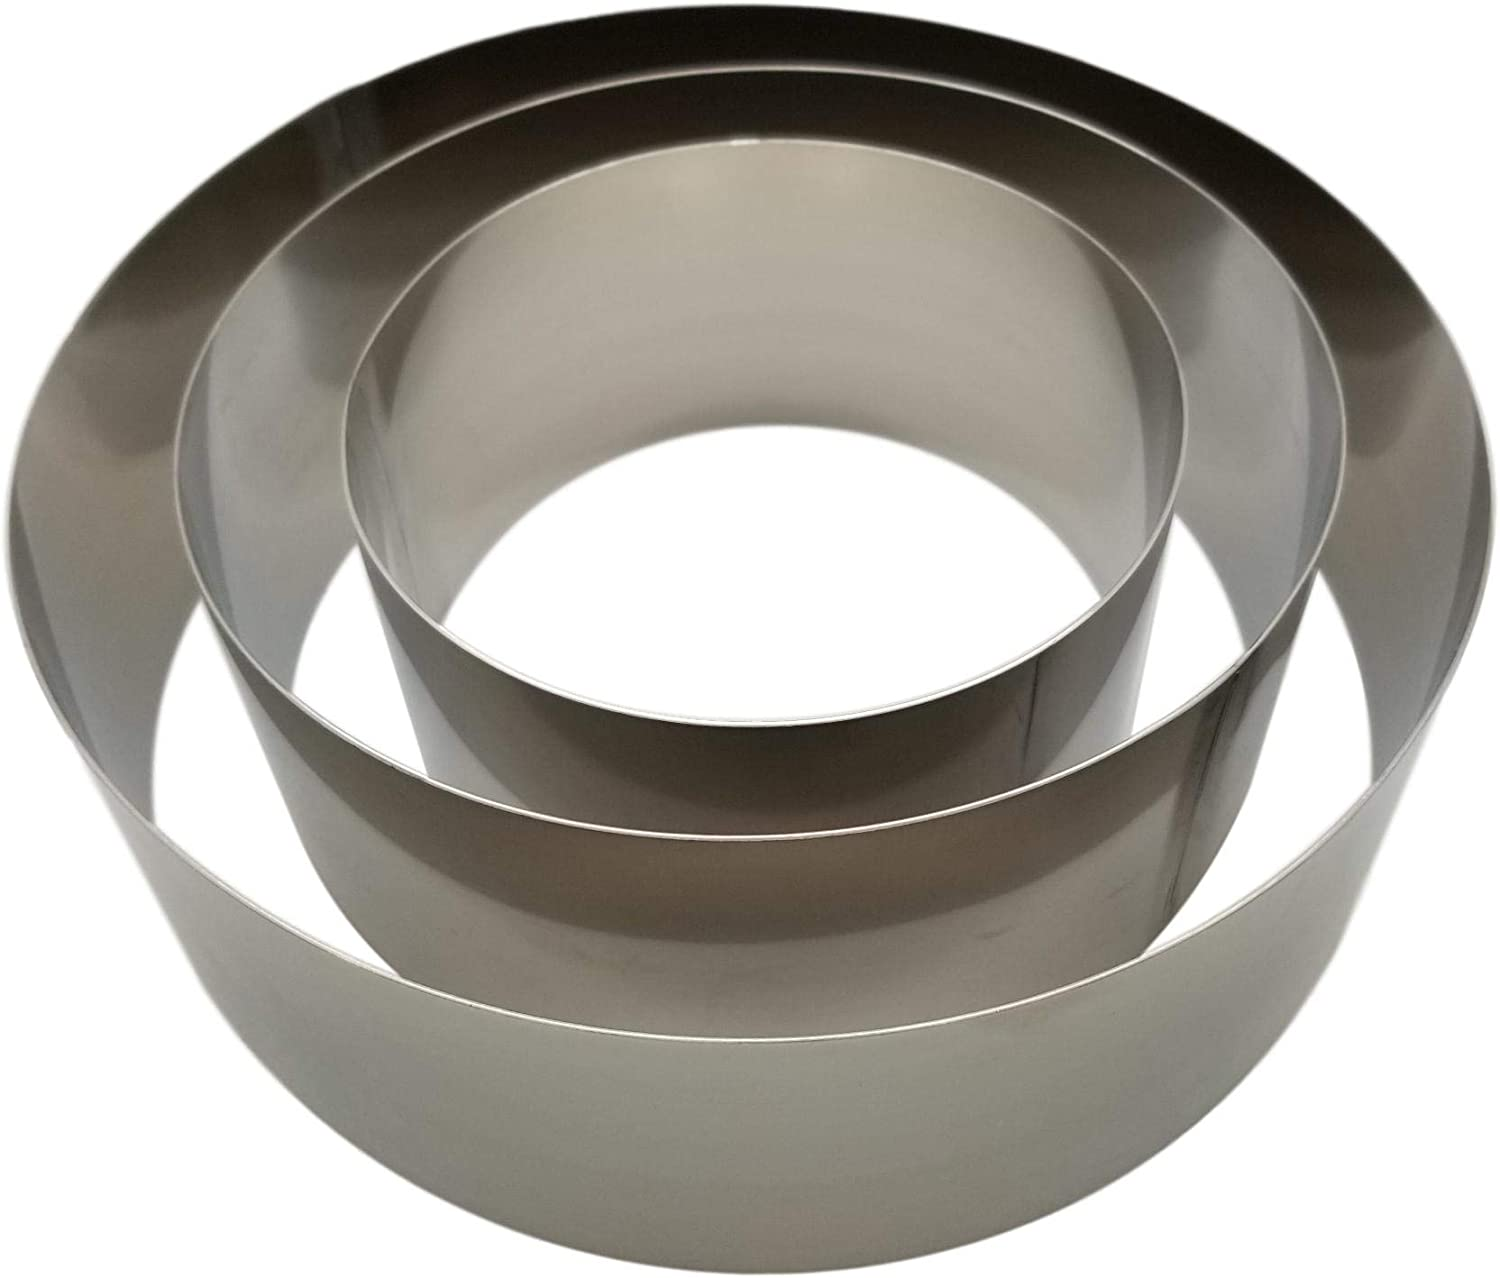 Mousse Diameters: 10 Inch and 6 Inch Wall Height: 3 1//8 Inch Baking Cooking Stainless Steel for Food Forming and Stacking. LiFWare Round Cake Ring Mold Set 8 Inch